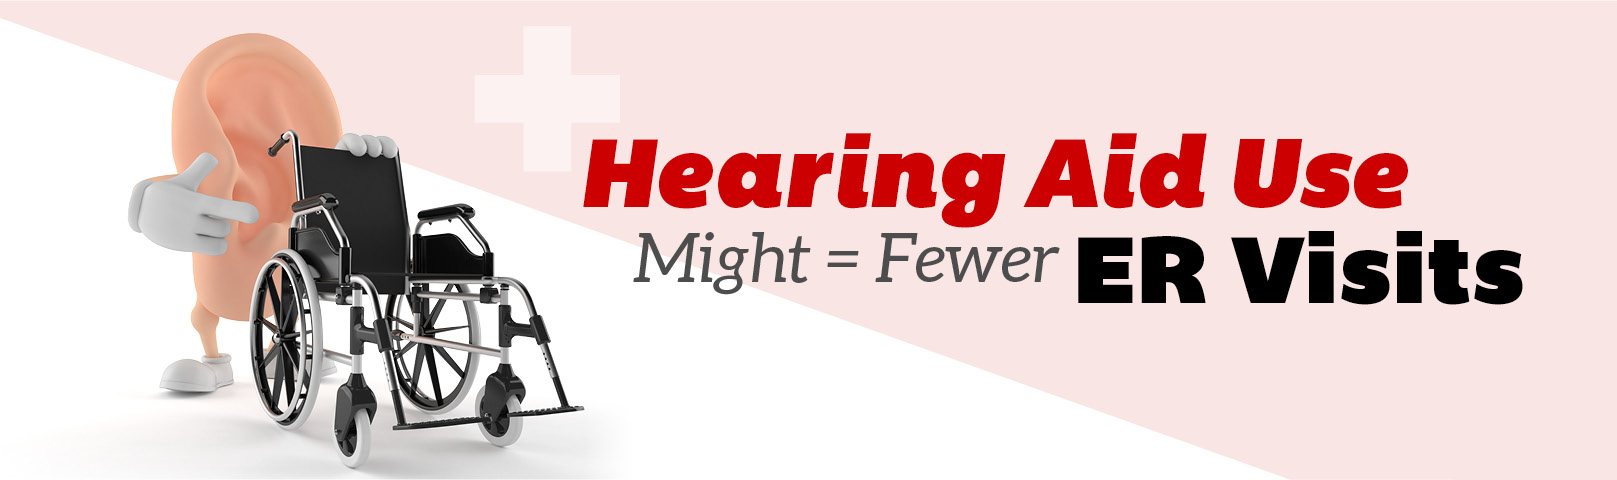 Hearing Aid Use Might Equal Fewer ER Visits